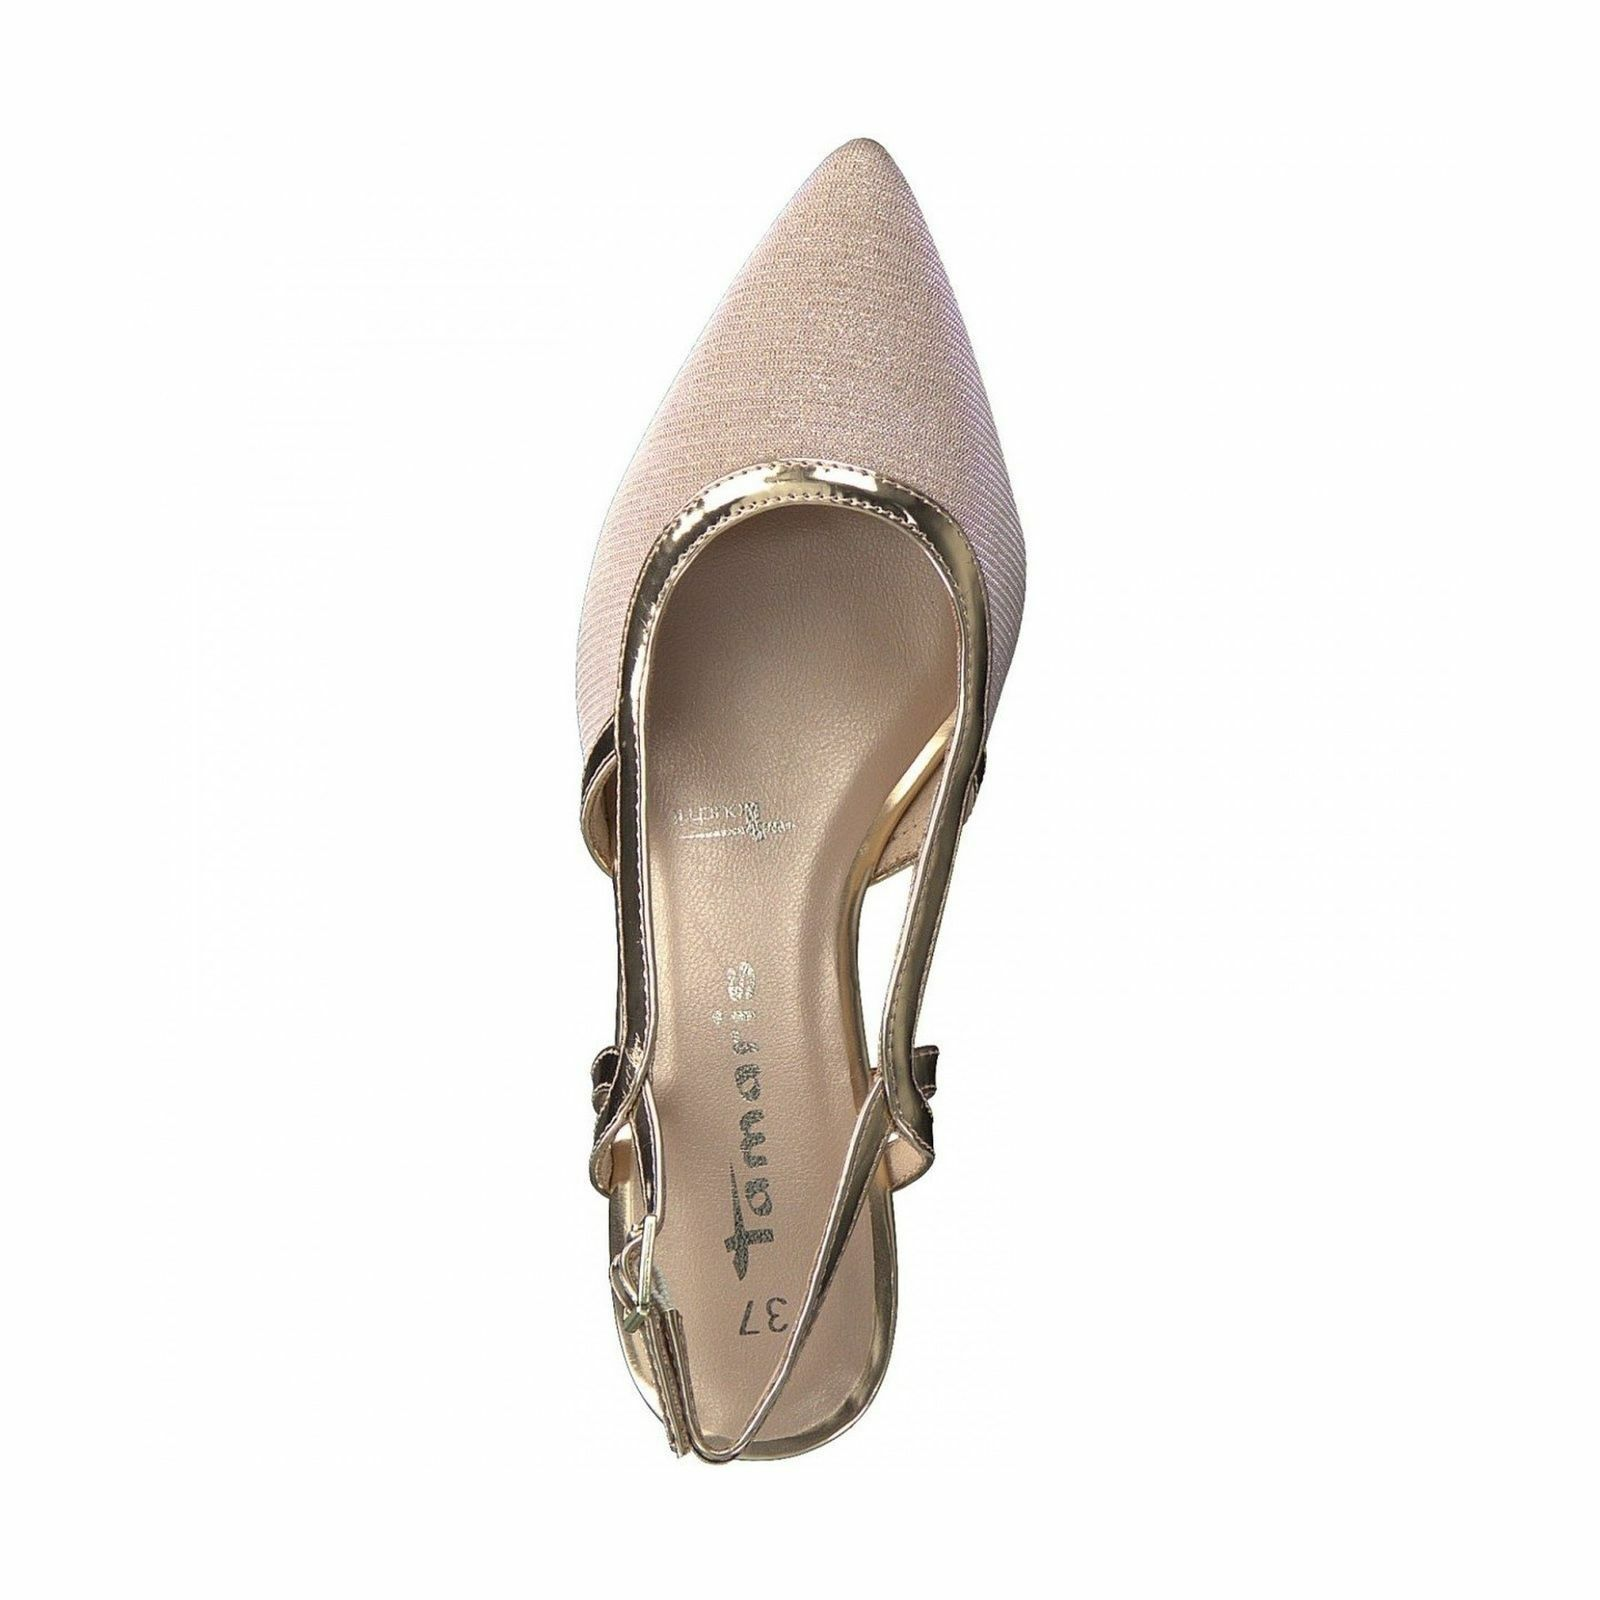 Tamaris Chaussures Femme 29610 rose Glitter Patent Party